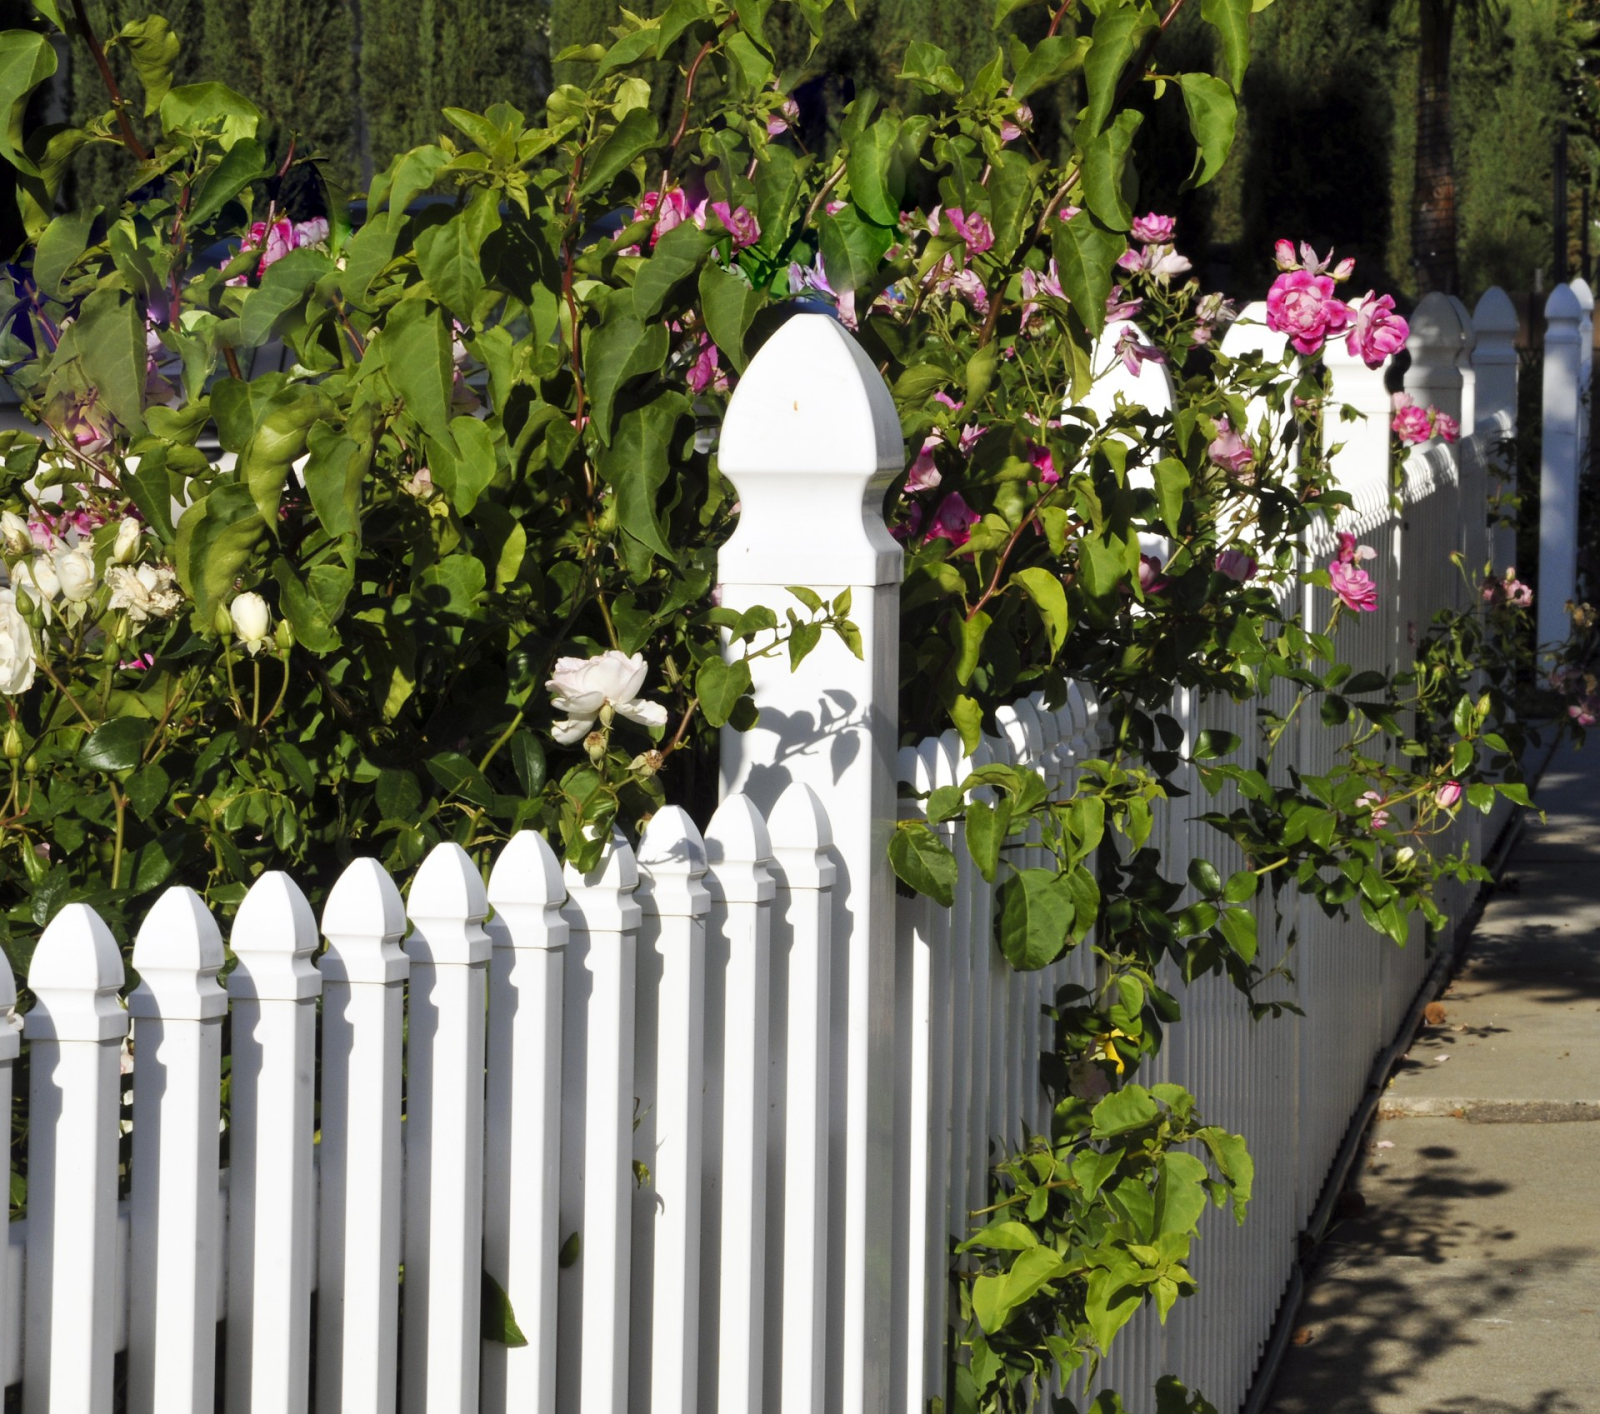 Throwback Thursday: The White Picket Fence pink flowers